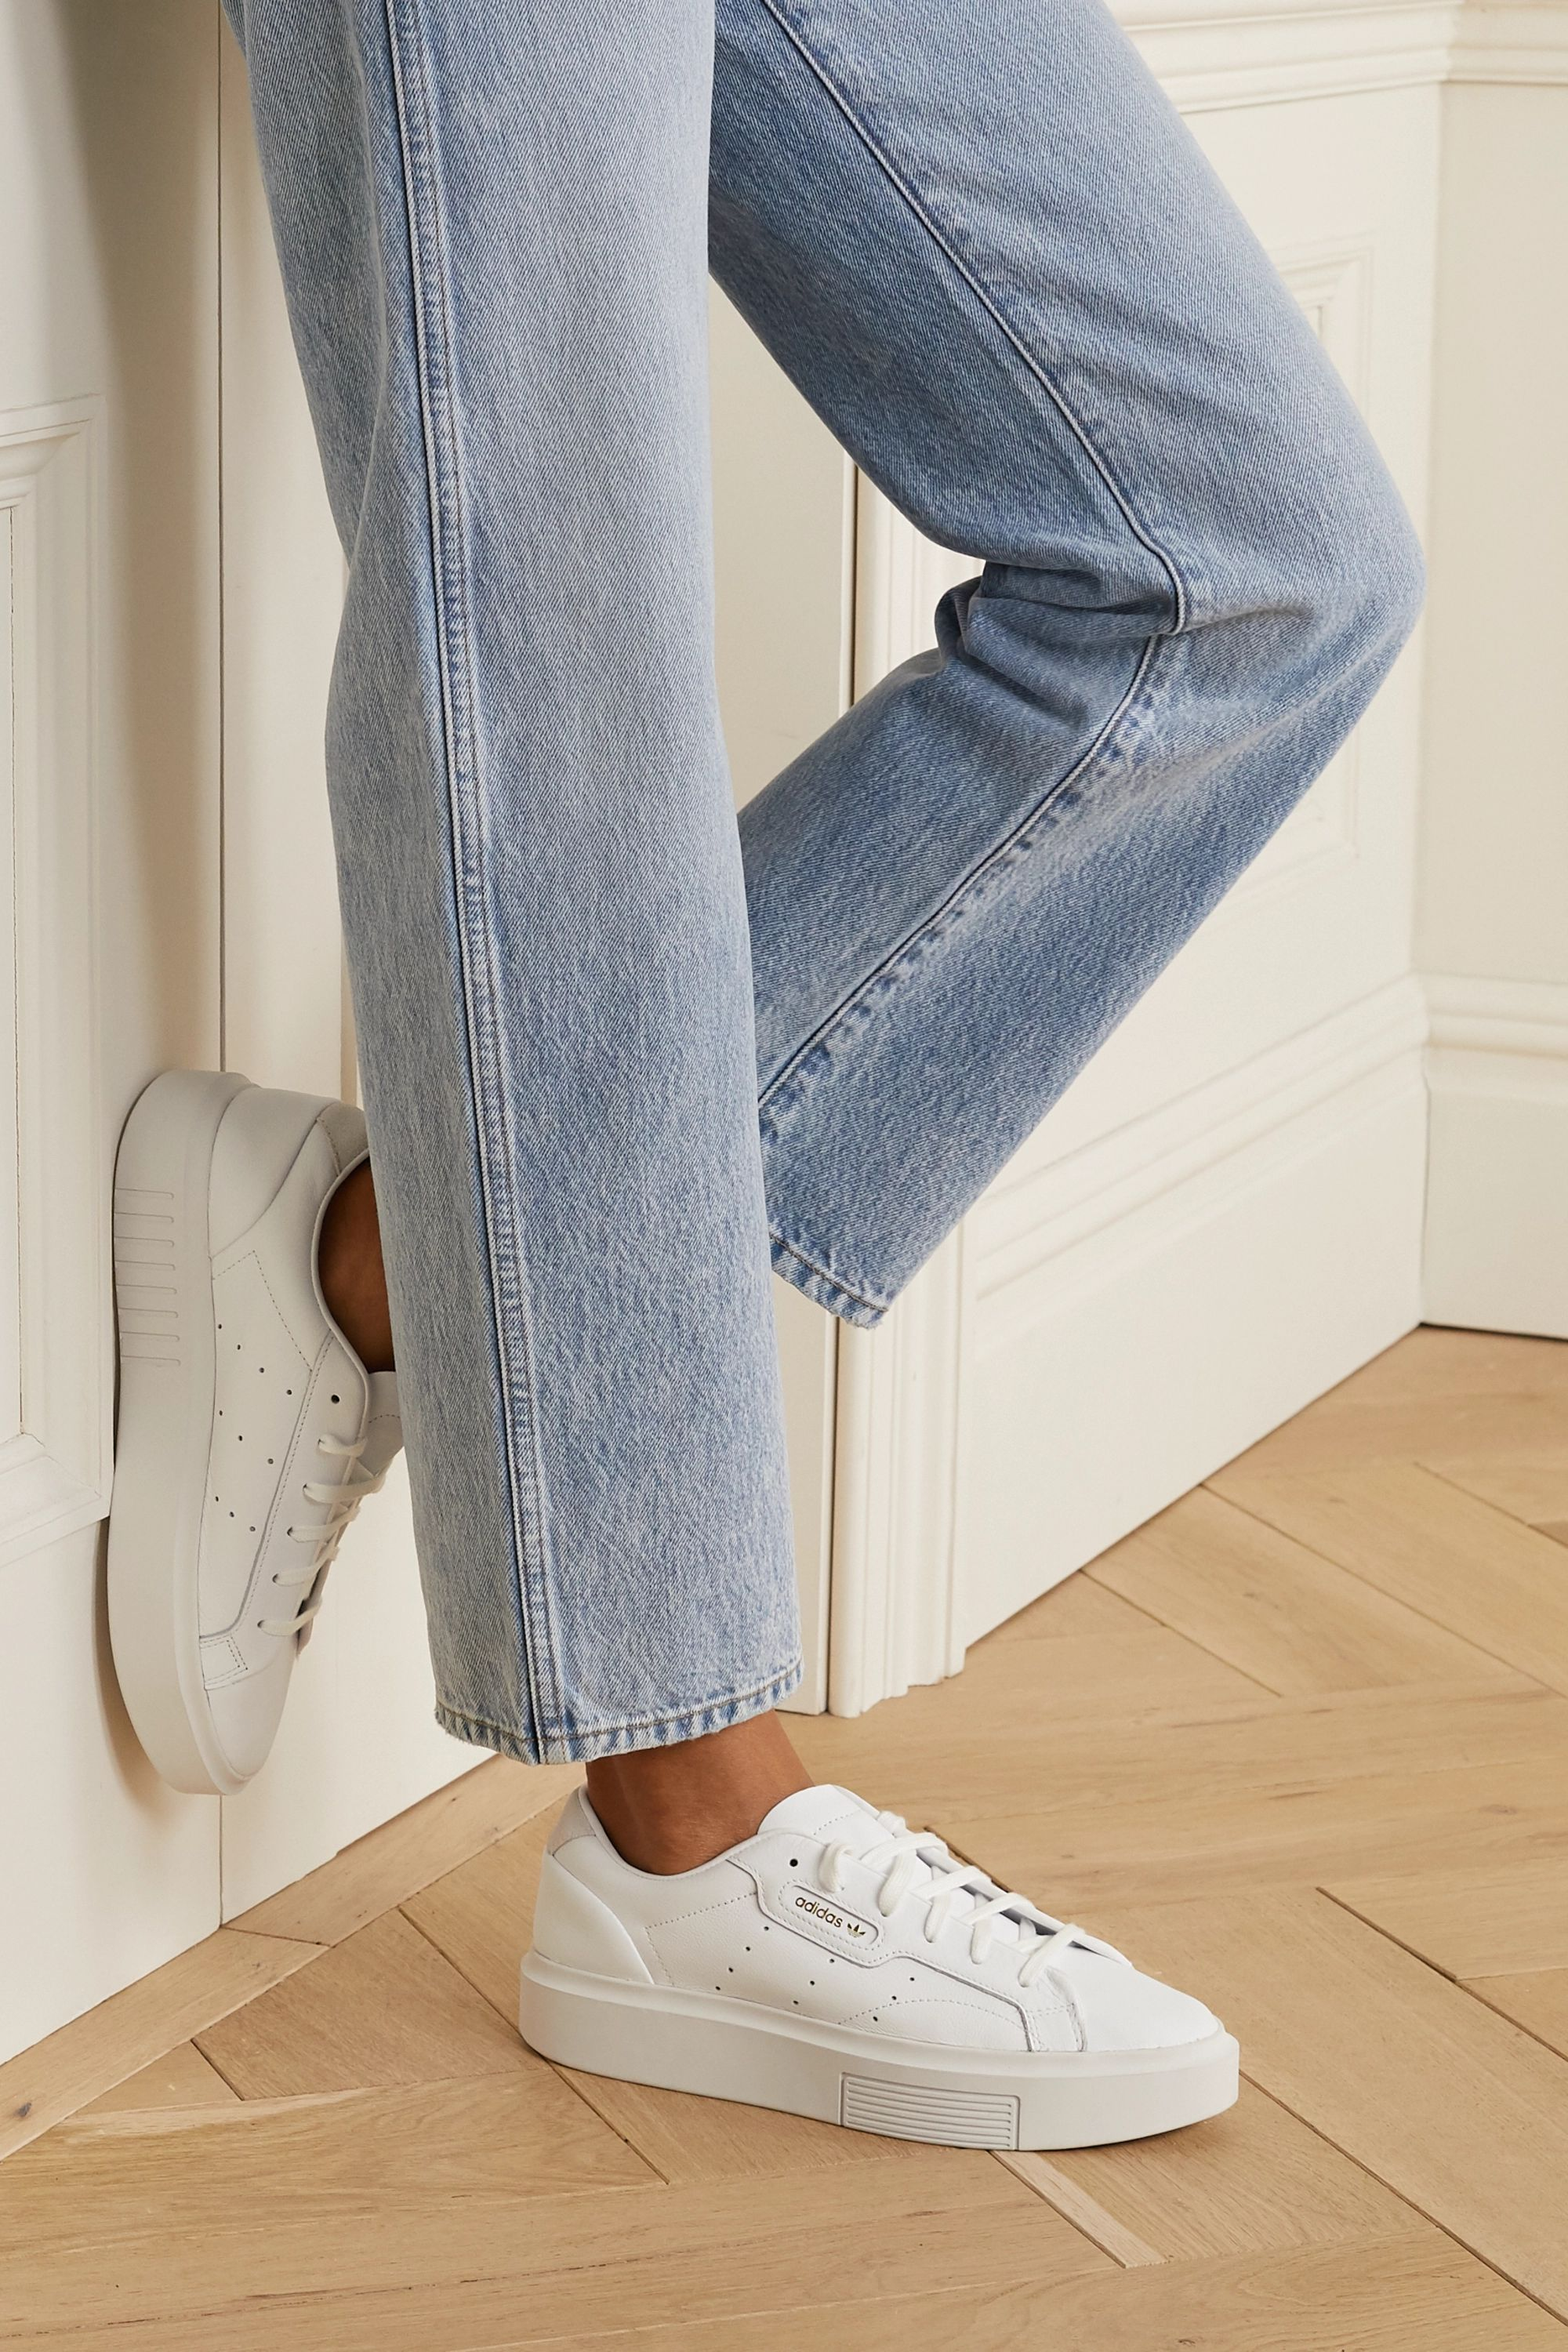 insecto Generosidad Excelente  White Sleek Super suede-trimmed leather sneakers | adidas Originals |  NET-A-PORTER